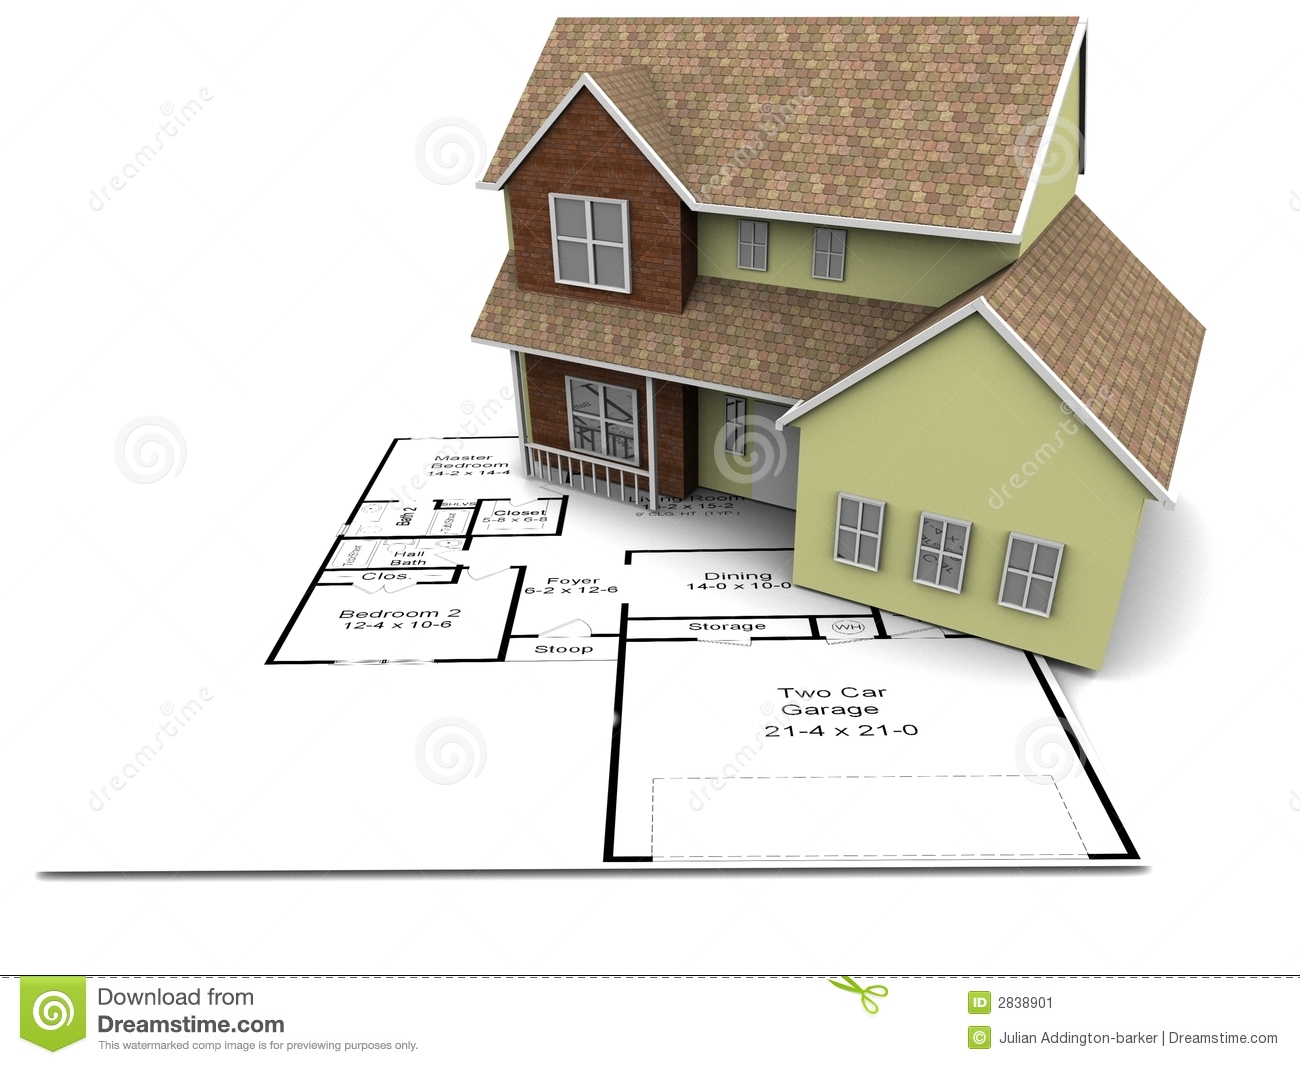 New house plans stock illustration illustration of house for New home designs floor plans